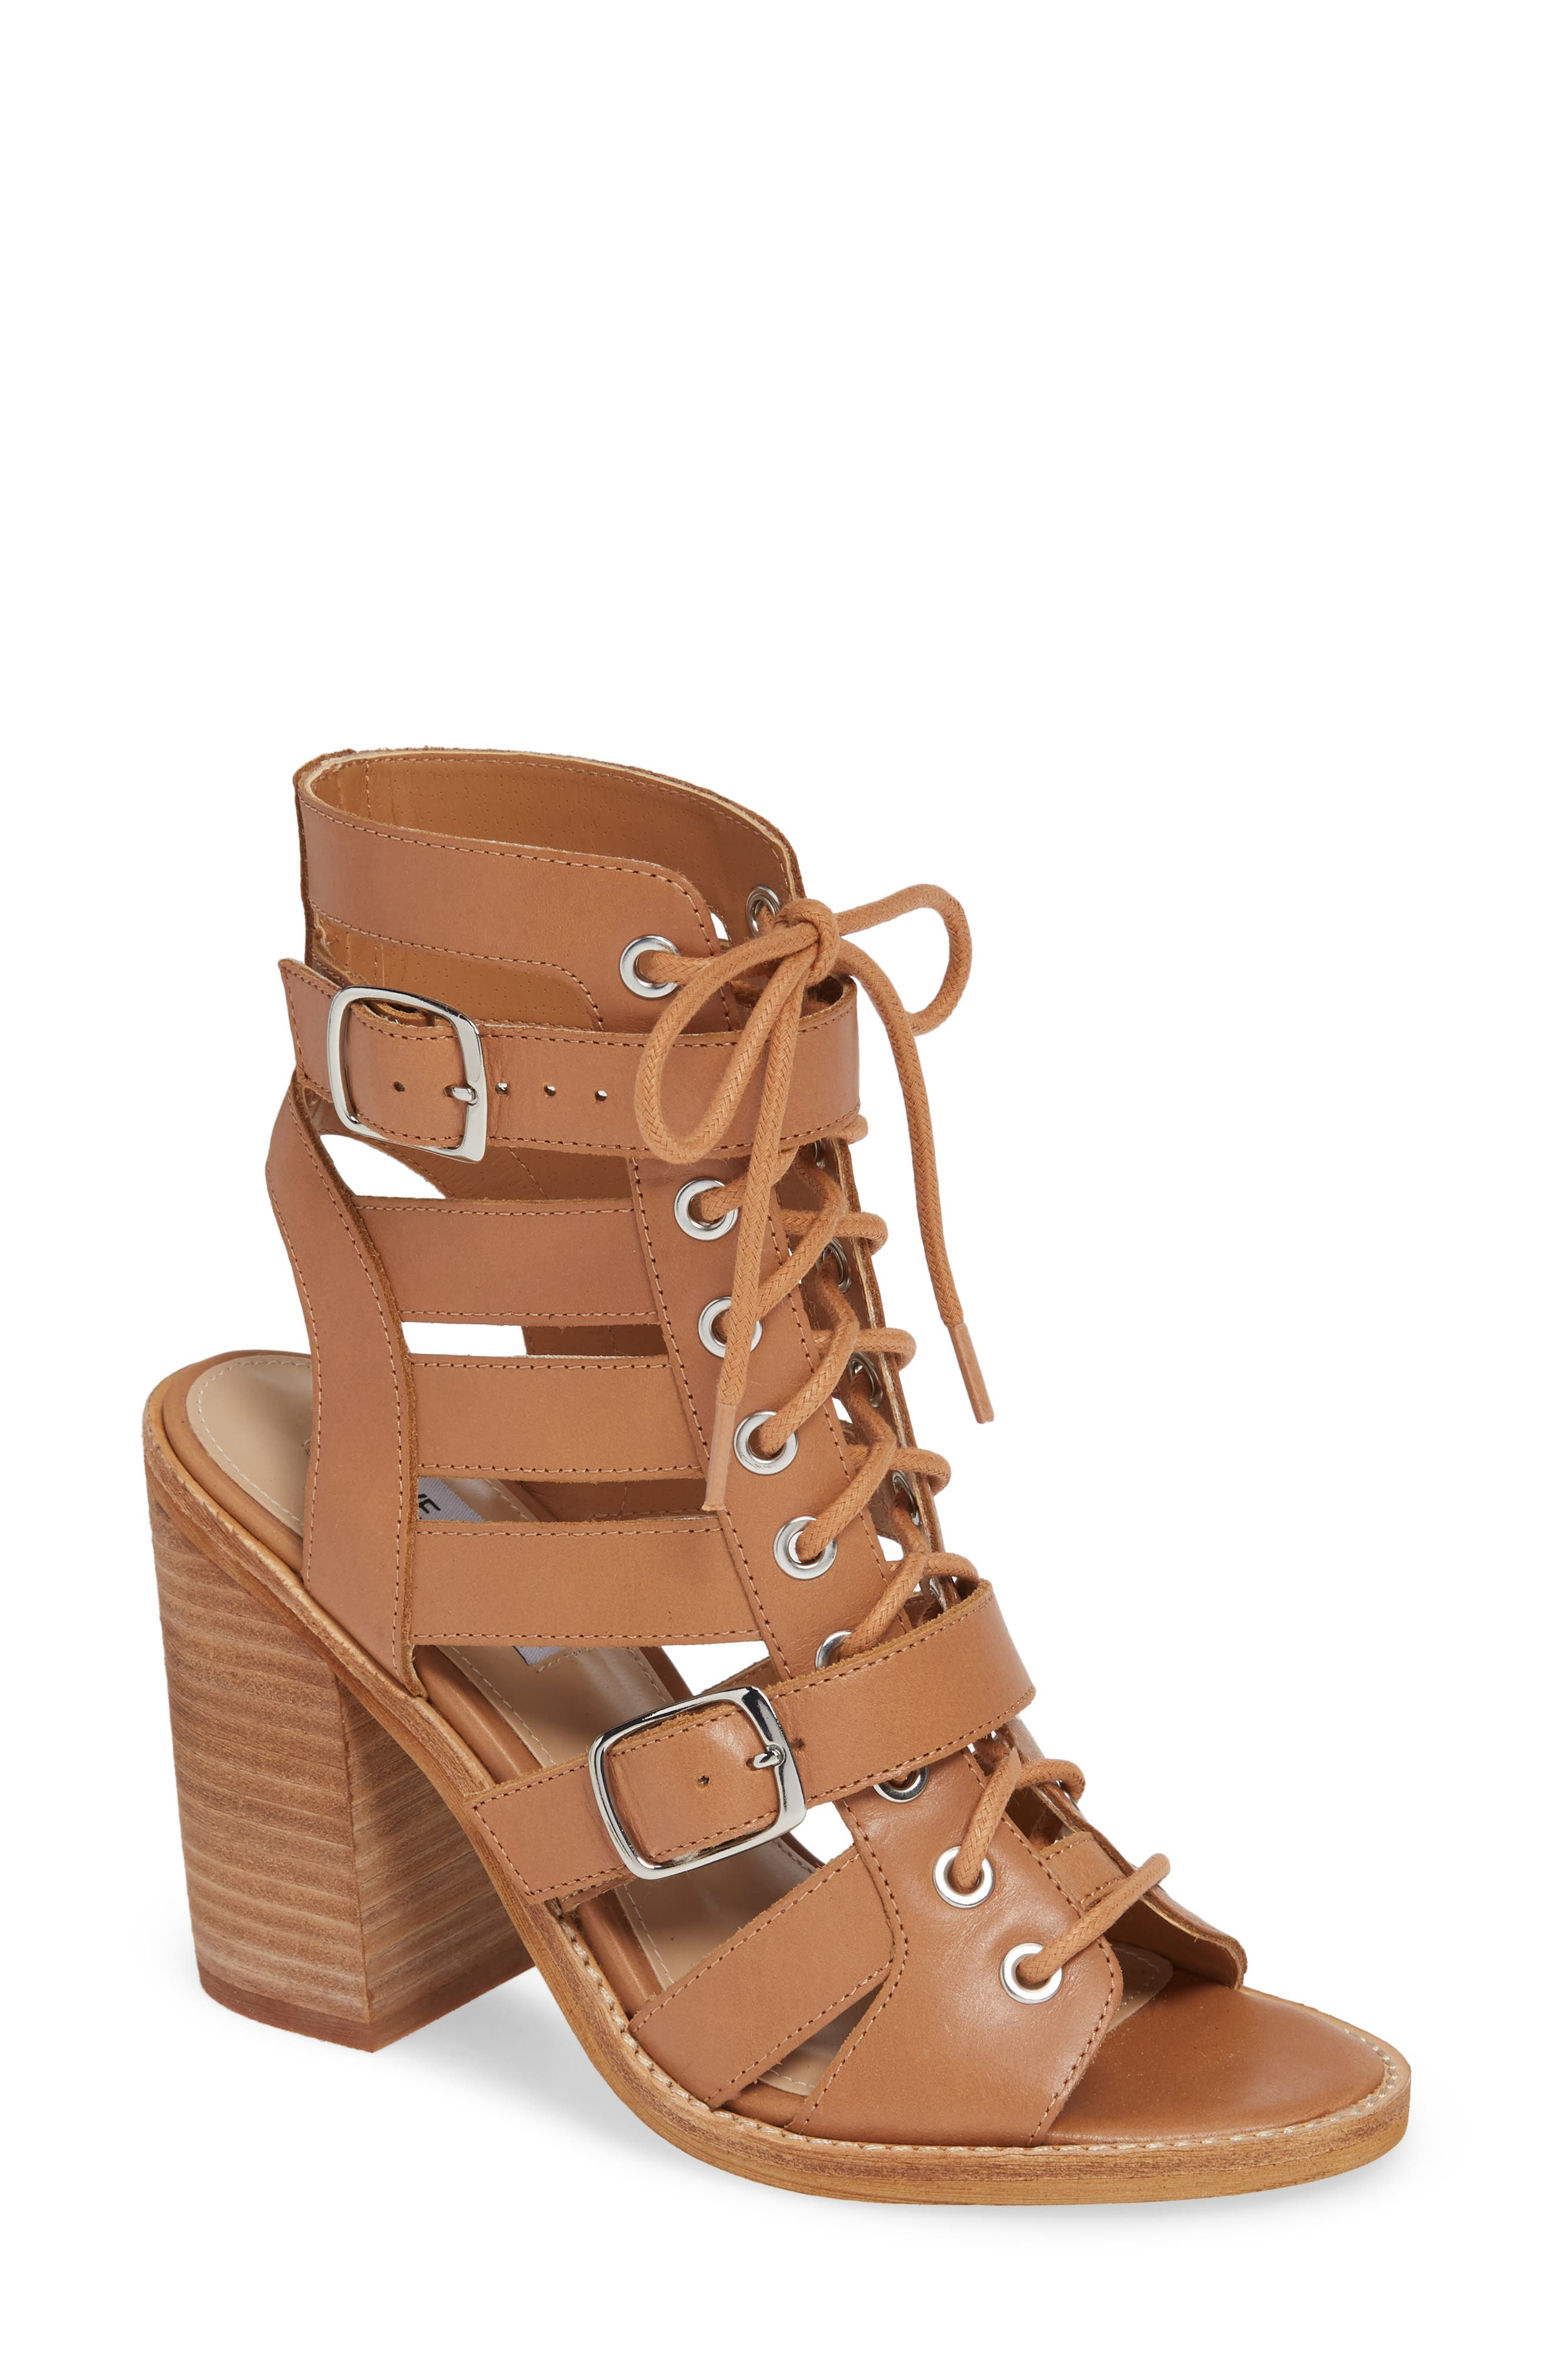 Cecilia Sandal in Natural Leather